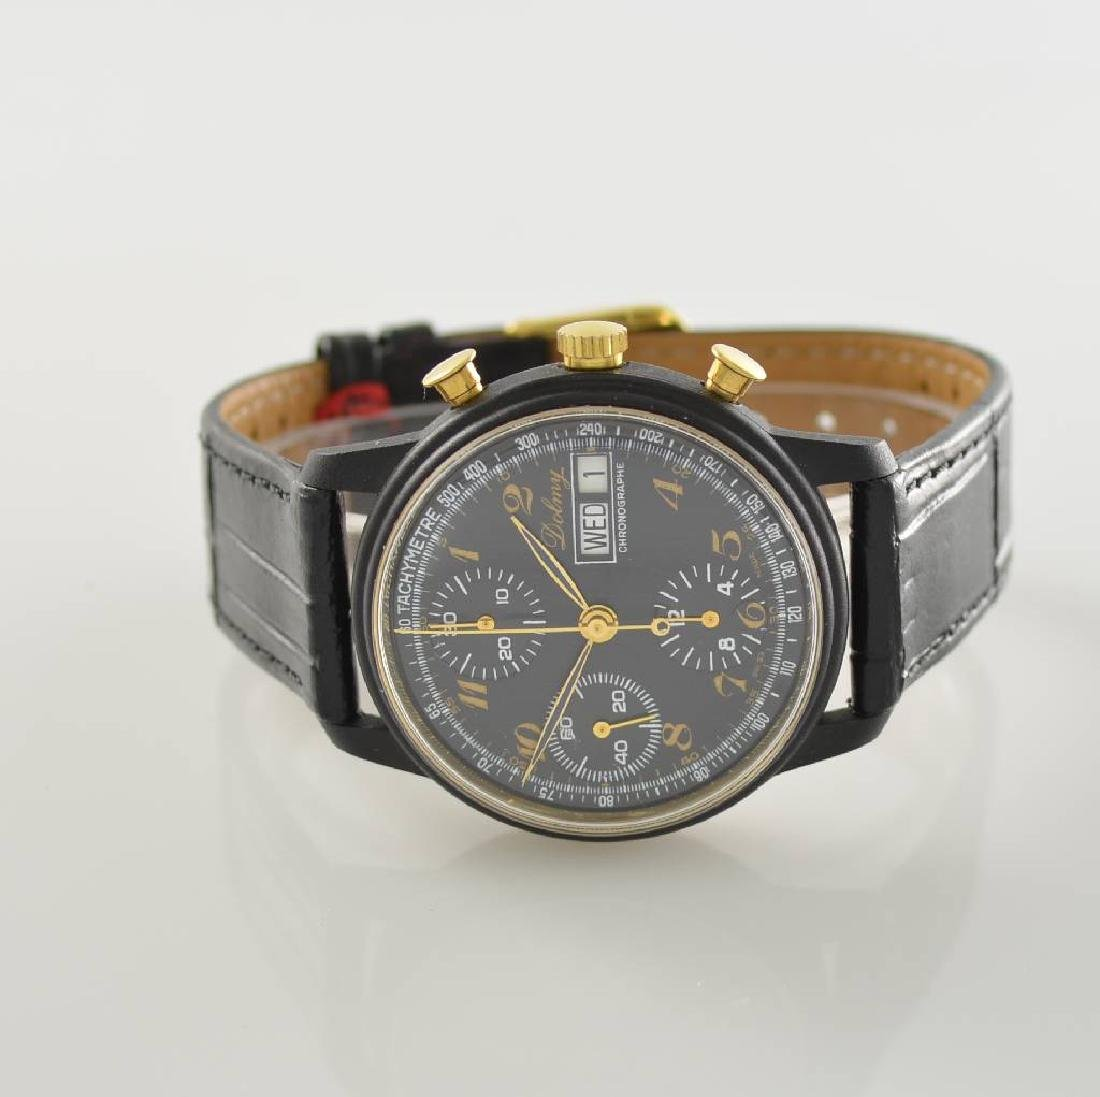 DOLMY manual wound chronograph